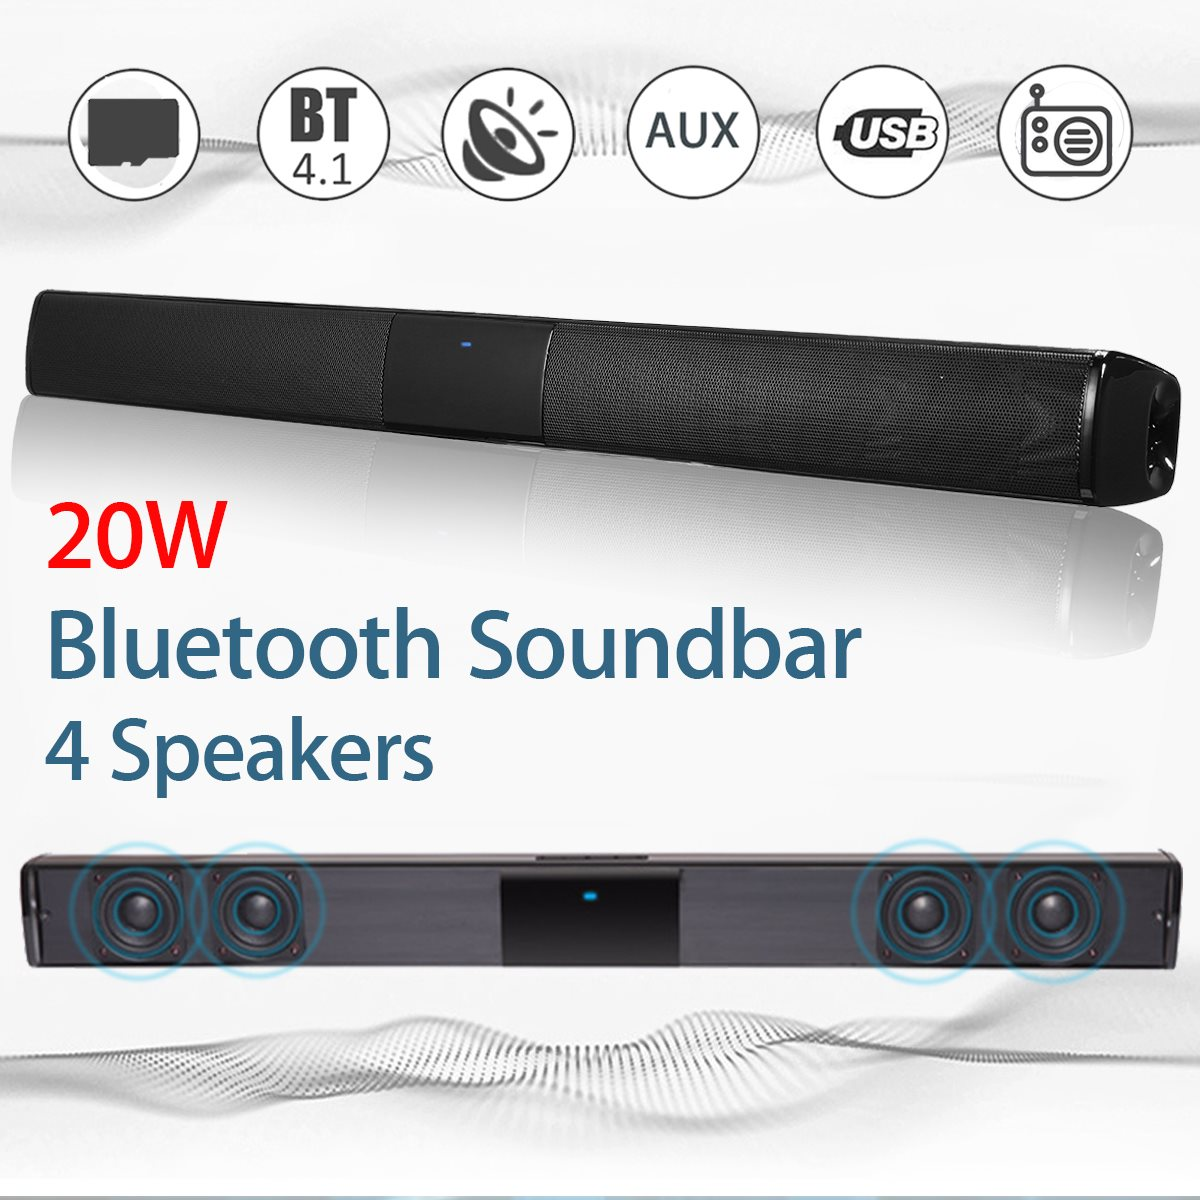 Kinco 20W Wireless Bluetooth Soundbar Stereo Hi-Fi Speaker Subwoofer FM TF AUX USB 50pcs lot lsm303dlhtr